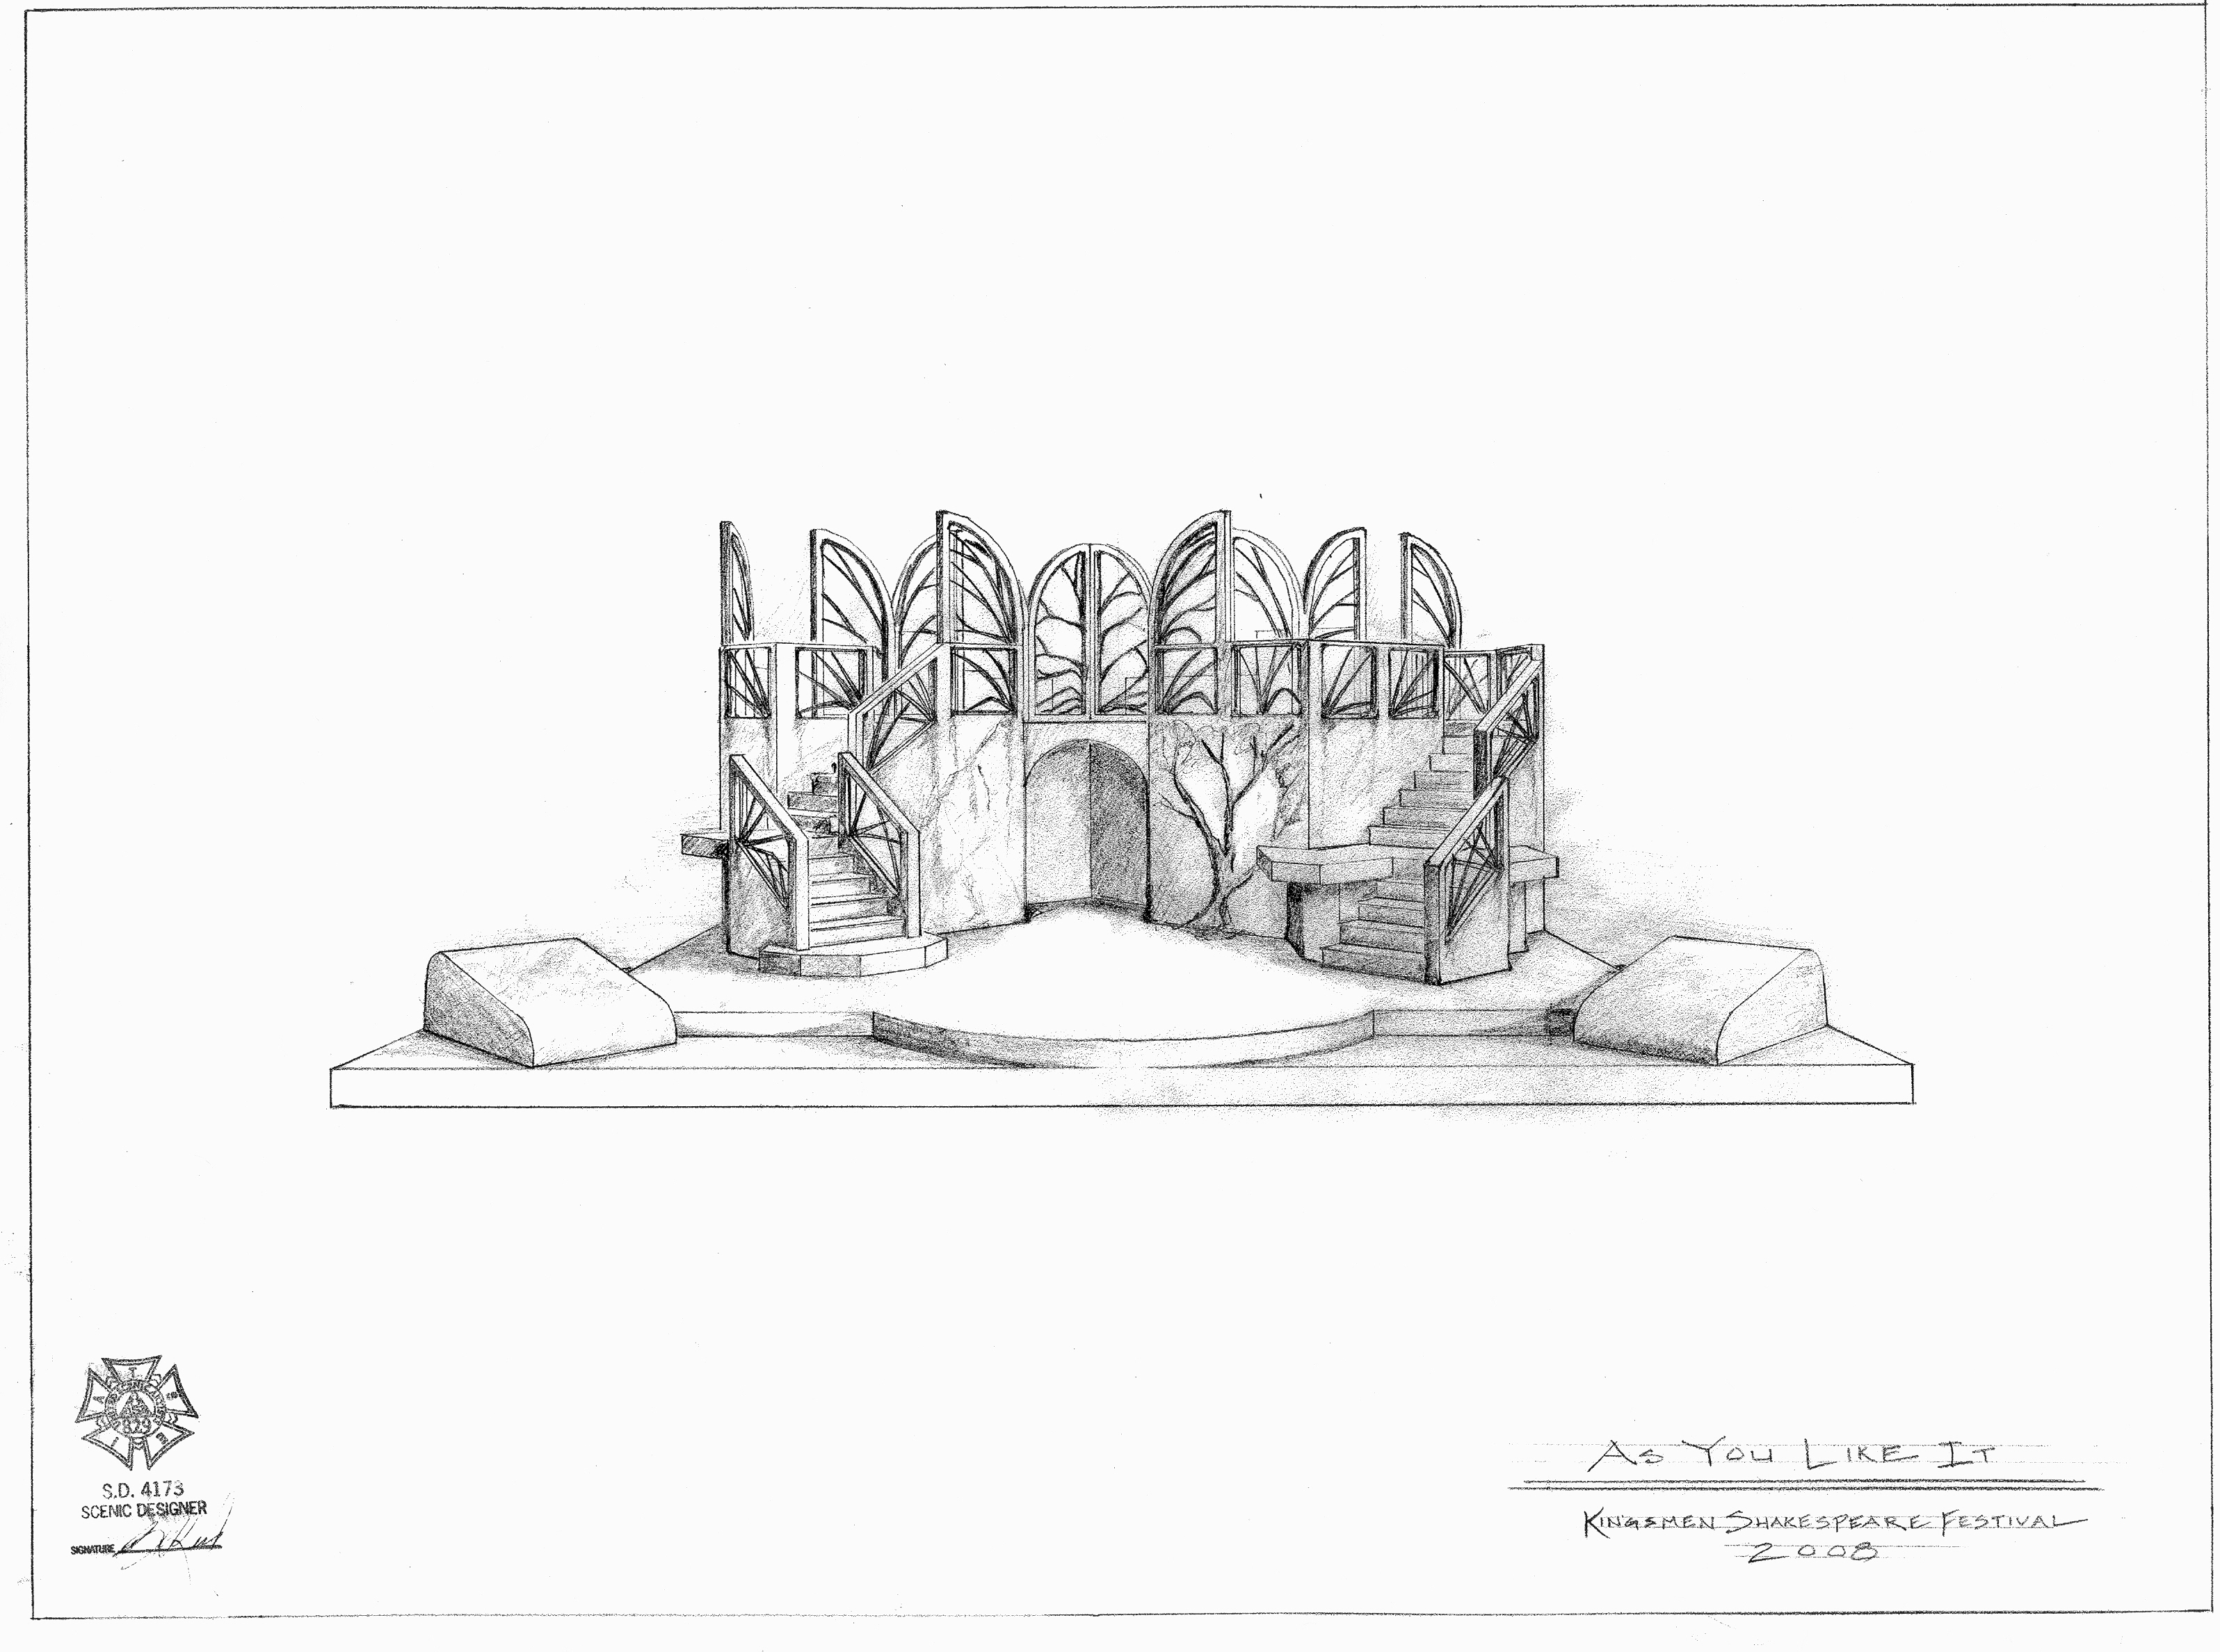 SCENIC DESIGN: As You Like It Kingsmen Shakespeare Festival 2008